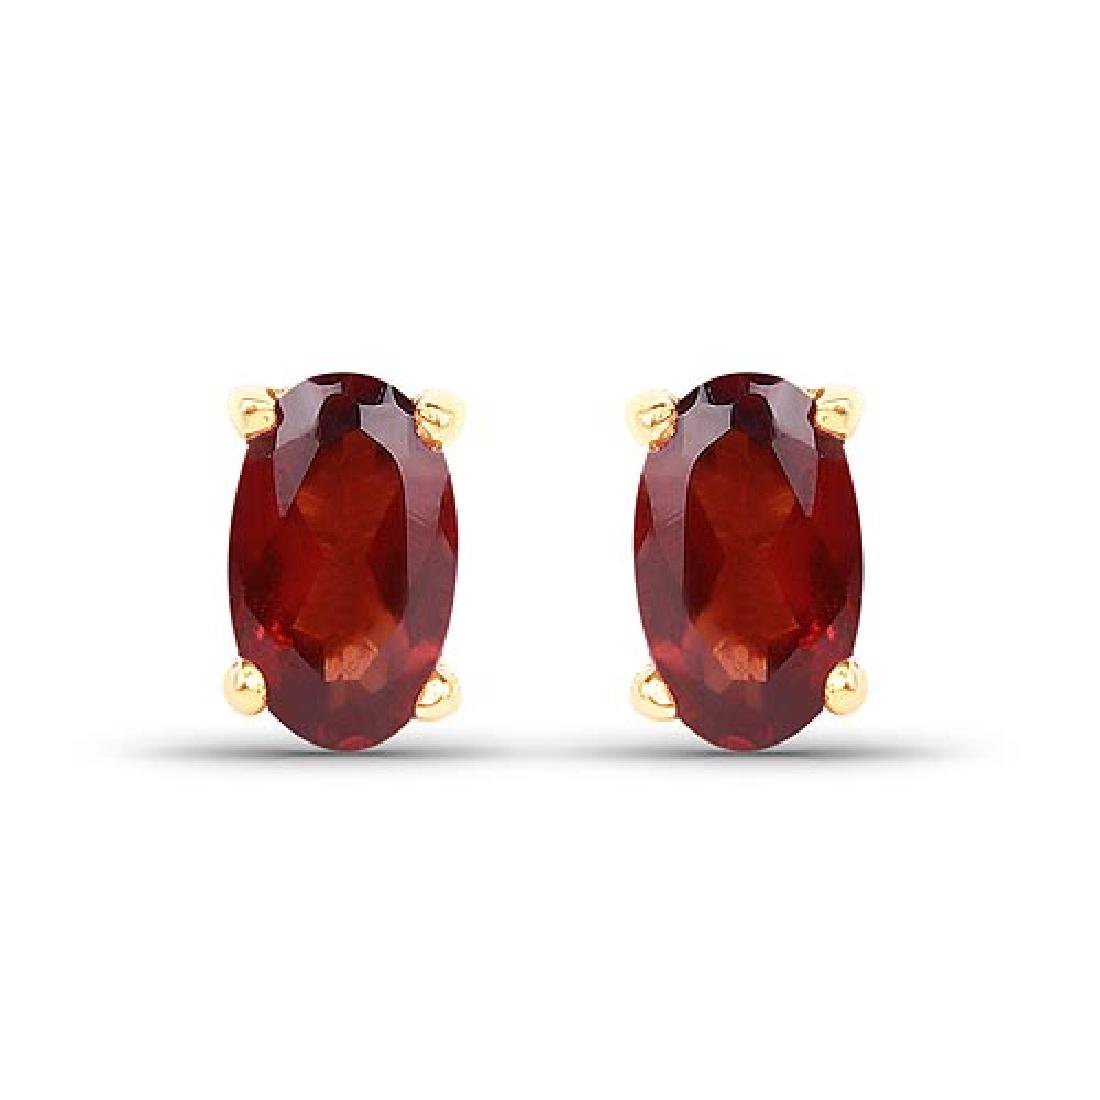 0.64 Carat Genuine Garnet 10K Yellow Gold Earrings